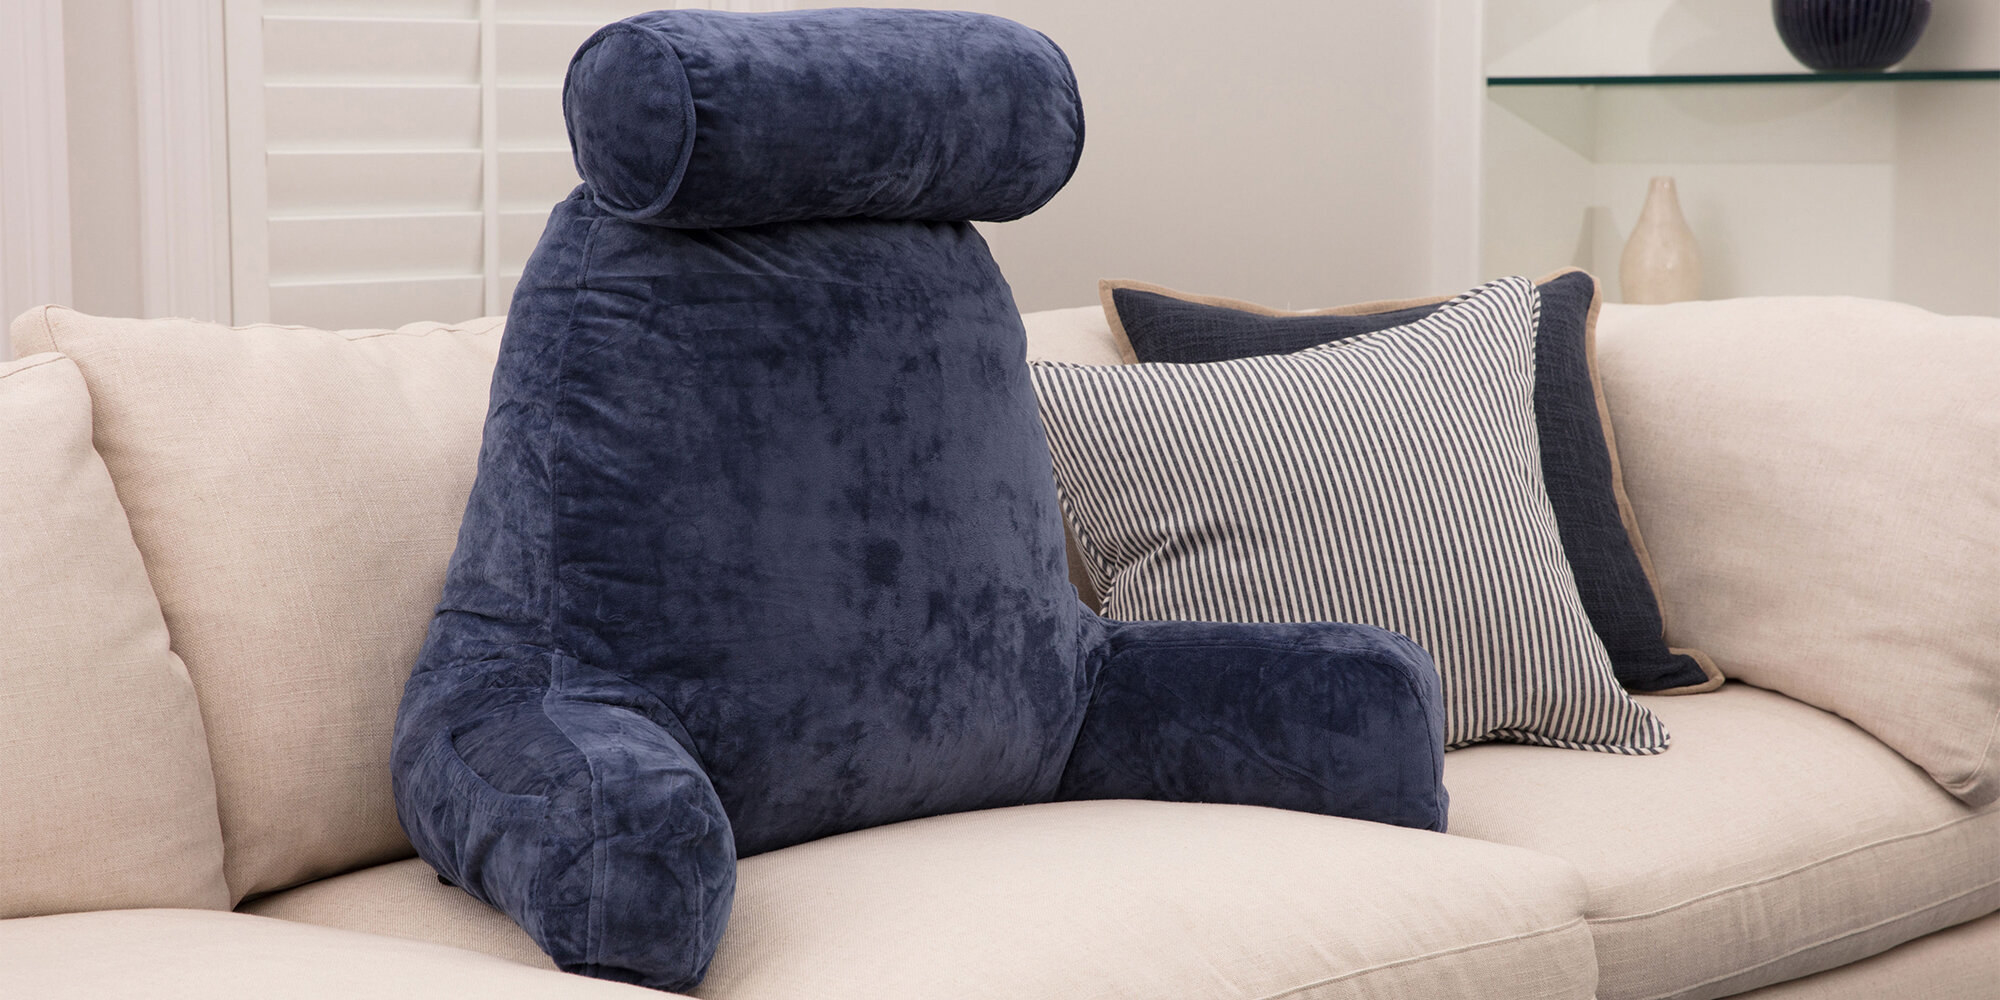 The pillow, which has a back support area, two arms that jut out from the bottom, and a cylindrical neck pillow